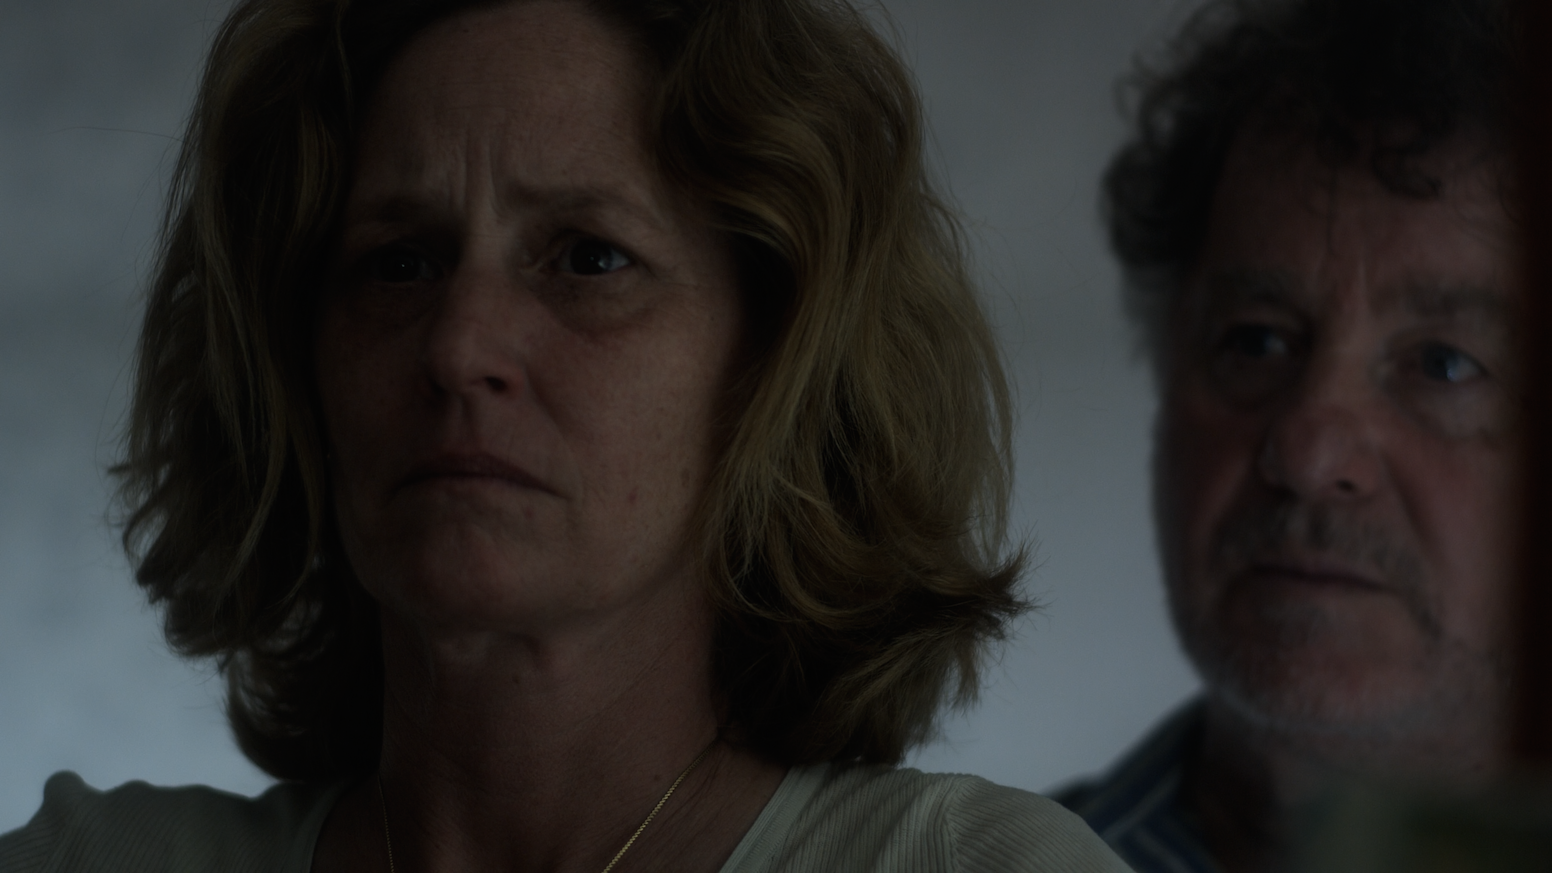 THE SEA IS ALL I KNOW is a powerful short film starring Academy Award  Nominated Melissa Leo, written and directed by Jordan Bayne.